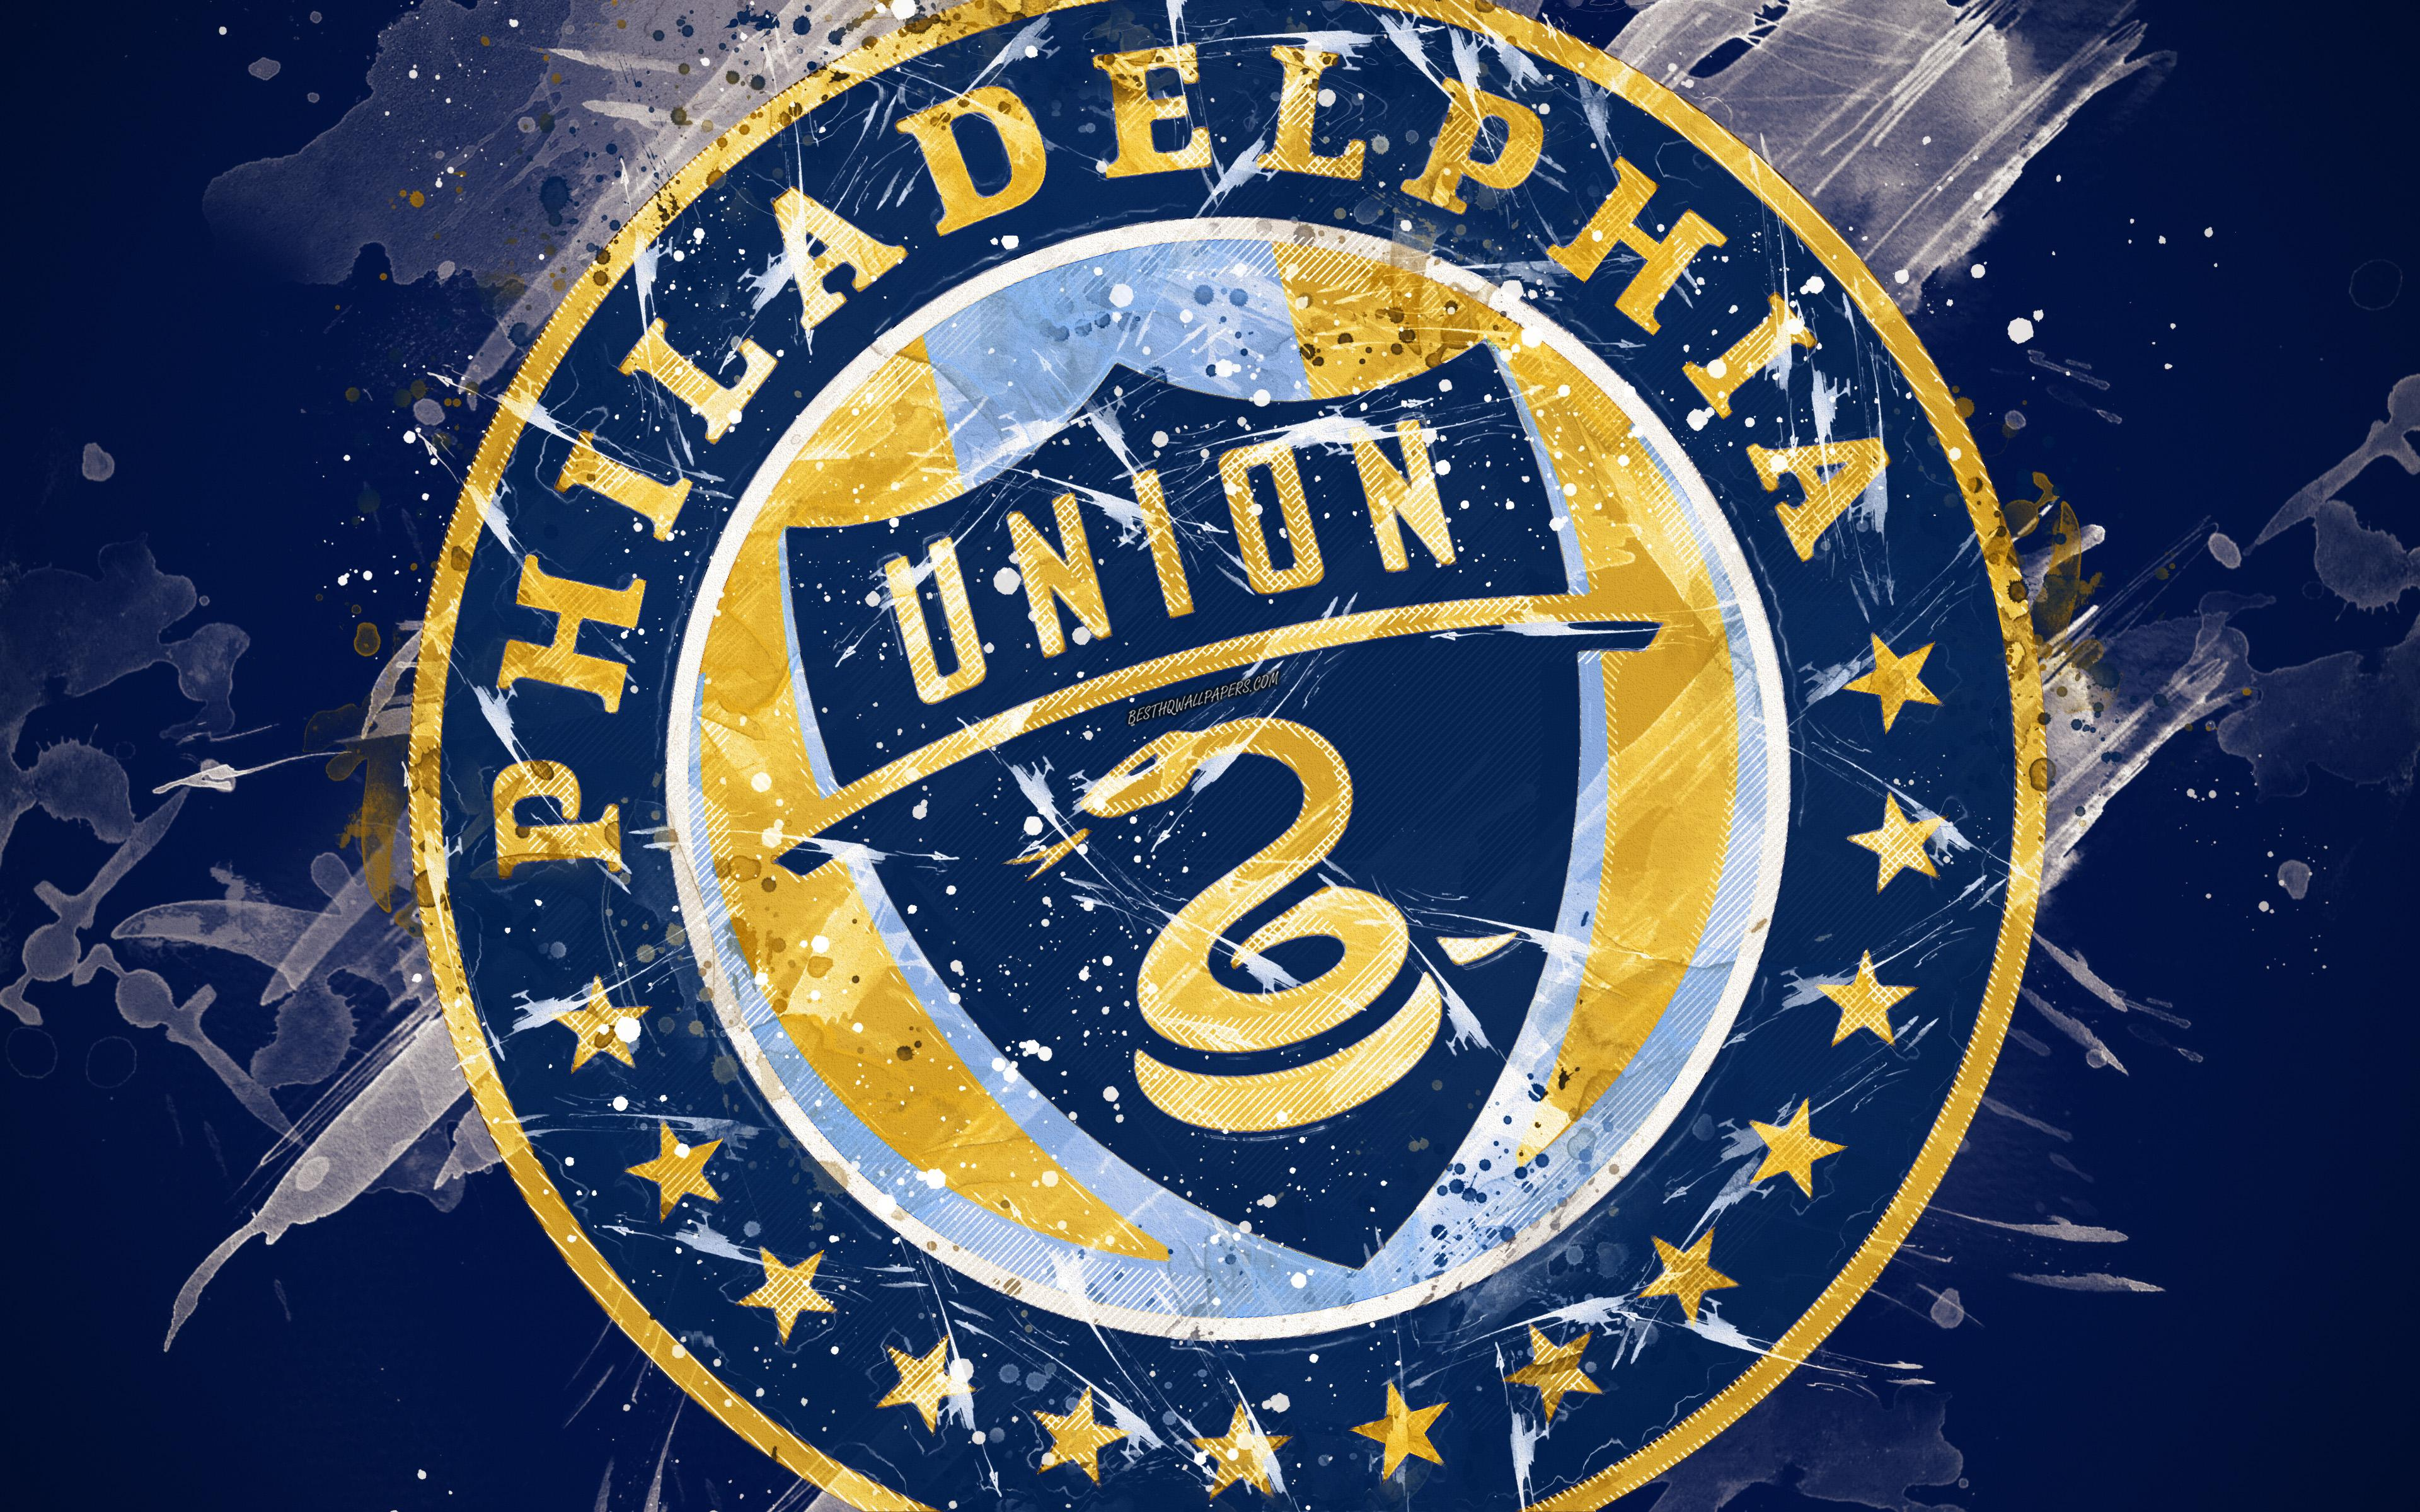 Emblem, Soccer, Logo, MLS, Philadelphia Union wallpapers and backgrounds